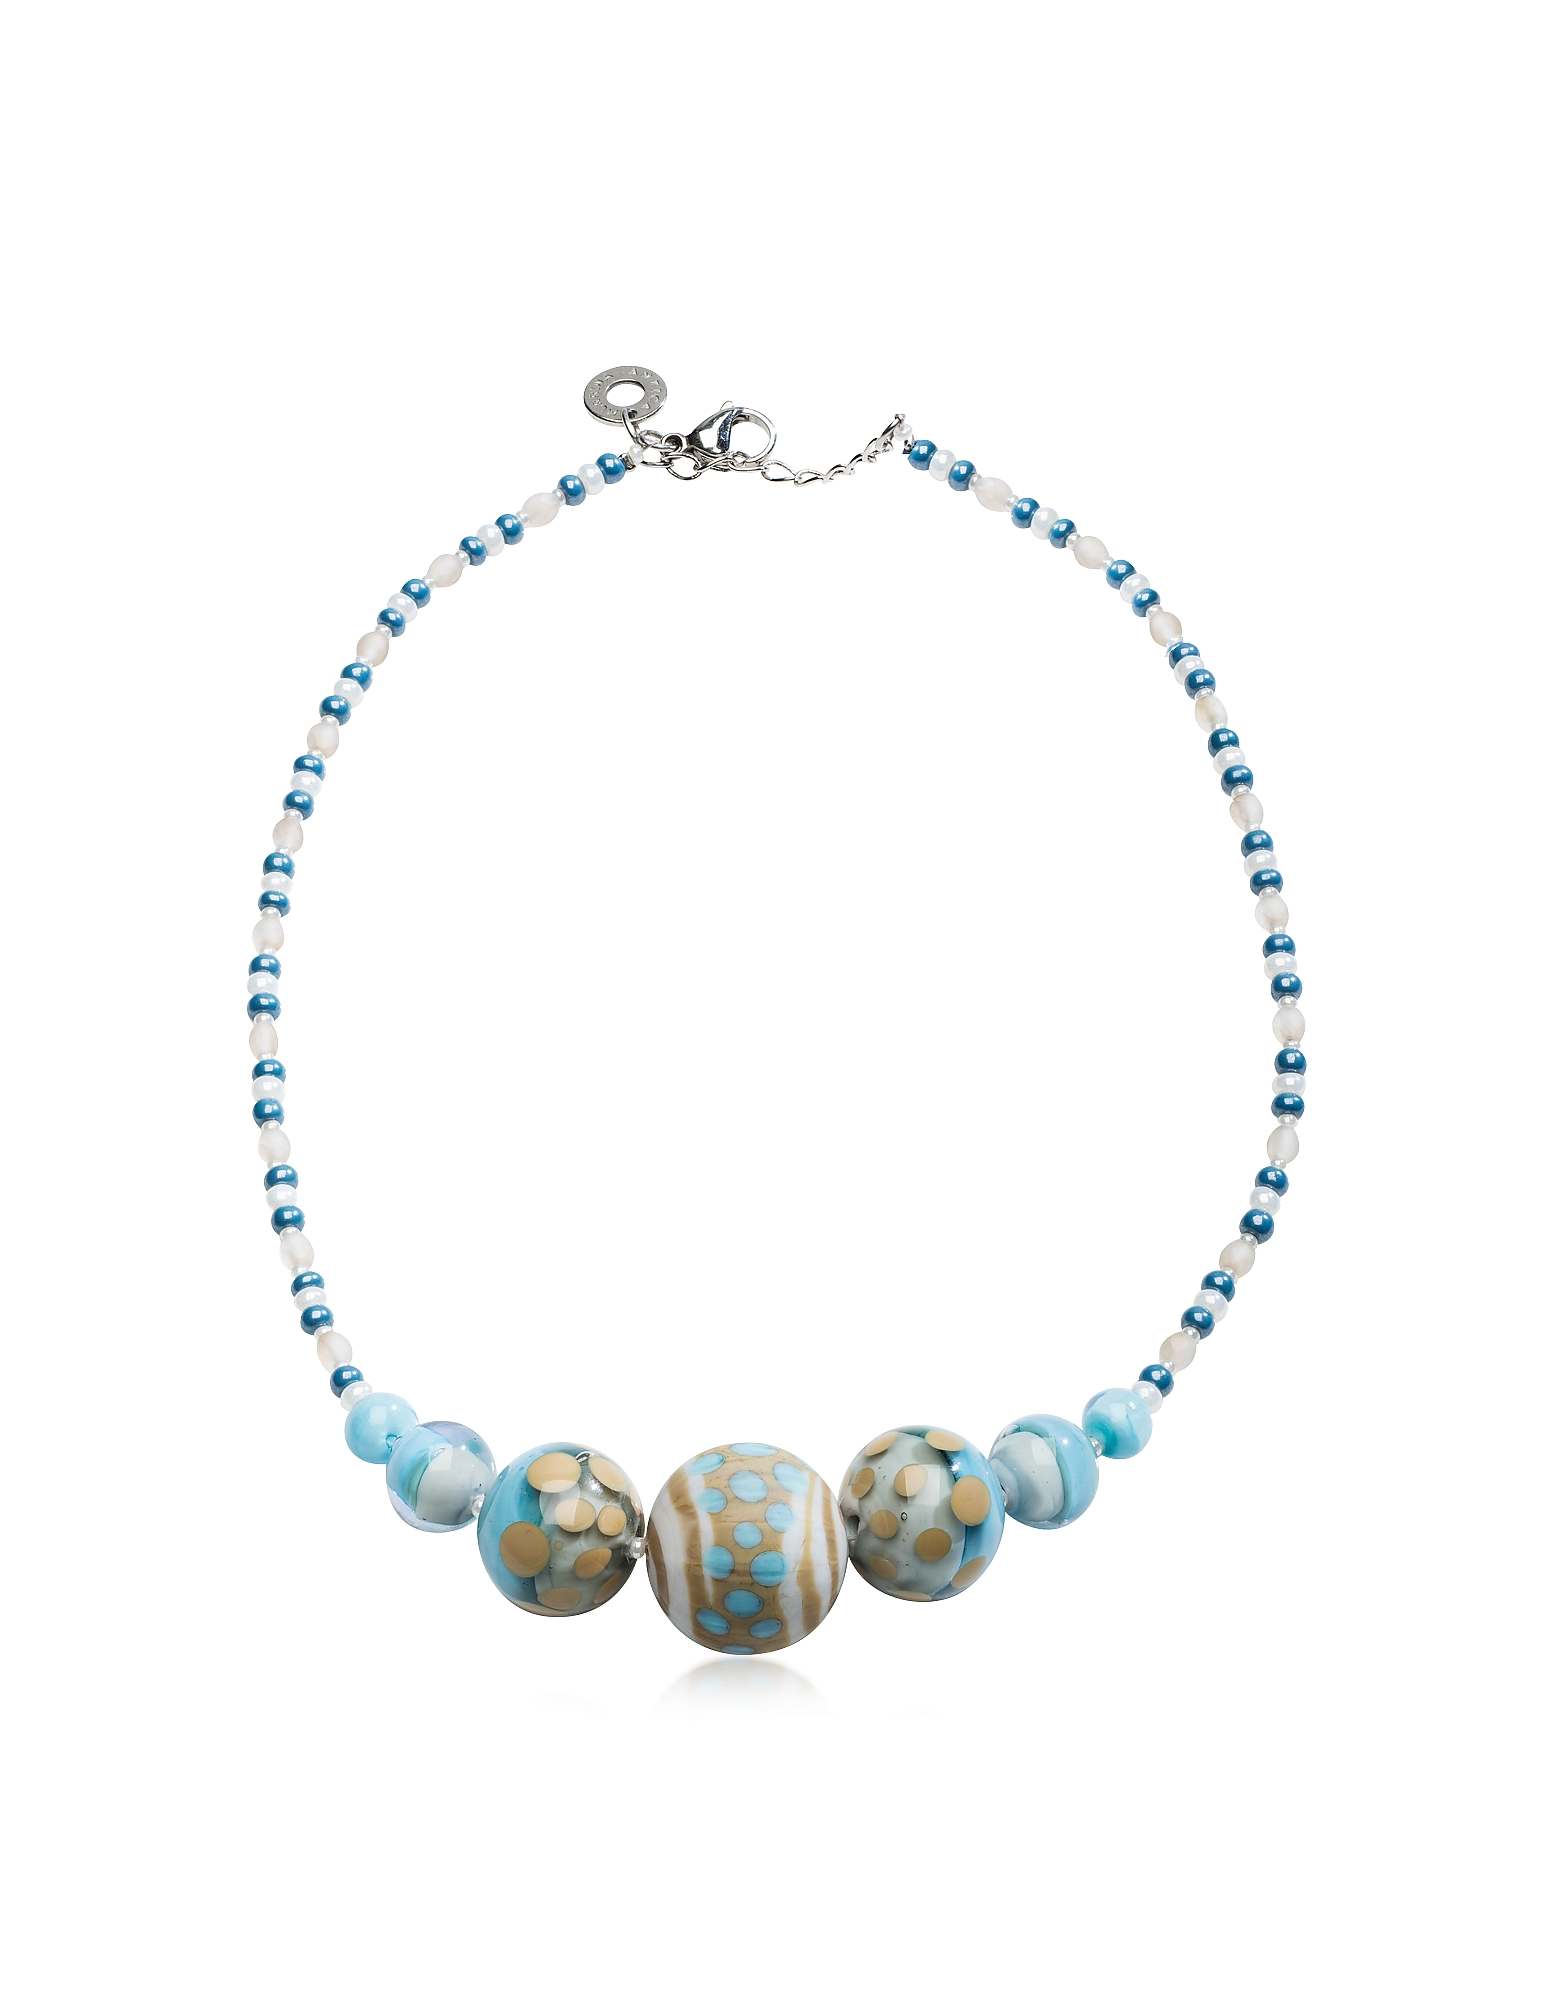 Antica Murrina Necklaces, Papaya 2 Light Blue Pastel Murano Glass Choker